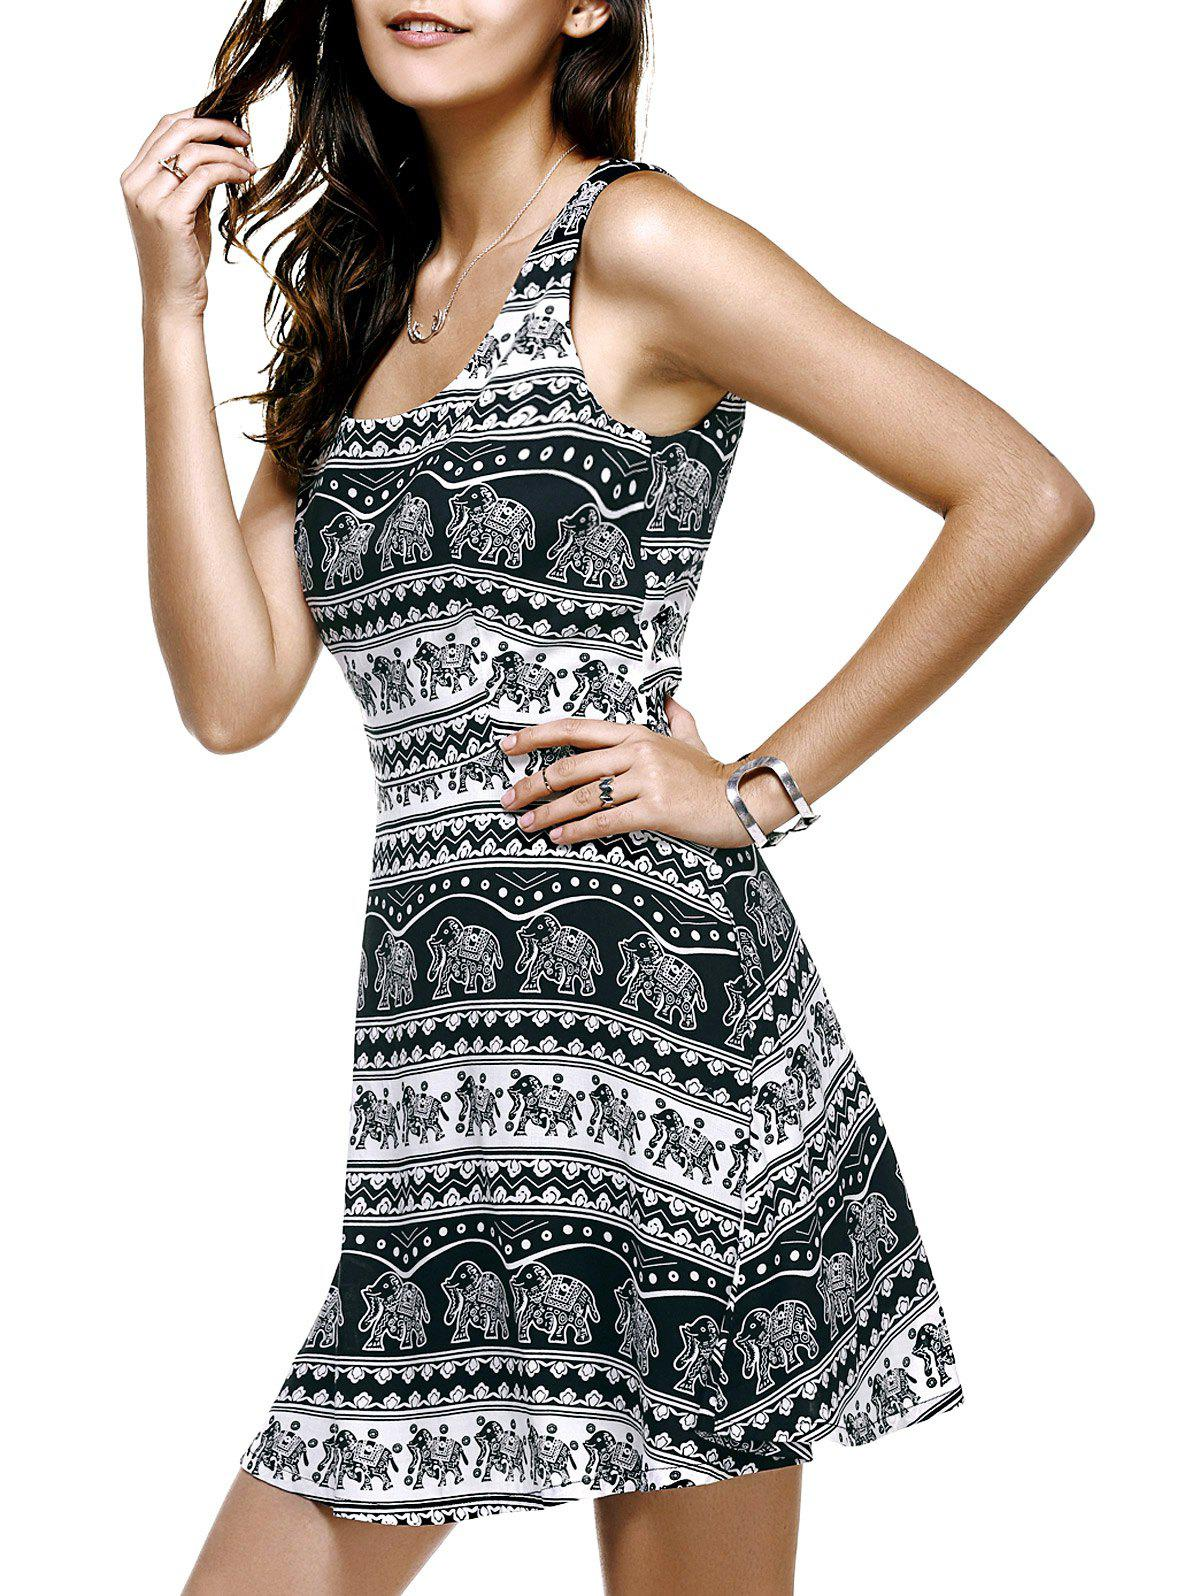 Fashionable U-Neck Elephant Pattern Printing Sleeveless Dress For Women - WHITE/BLACK XL